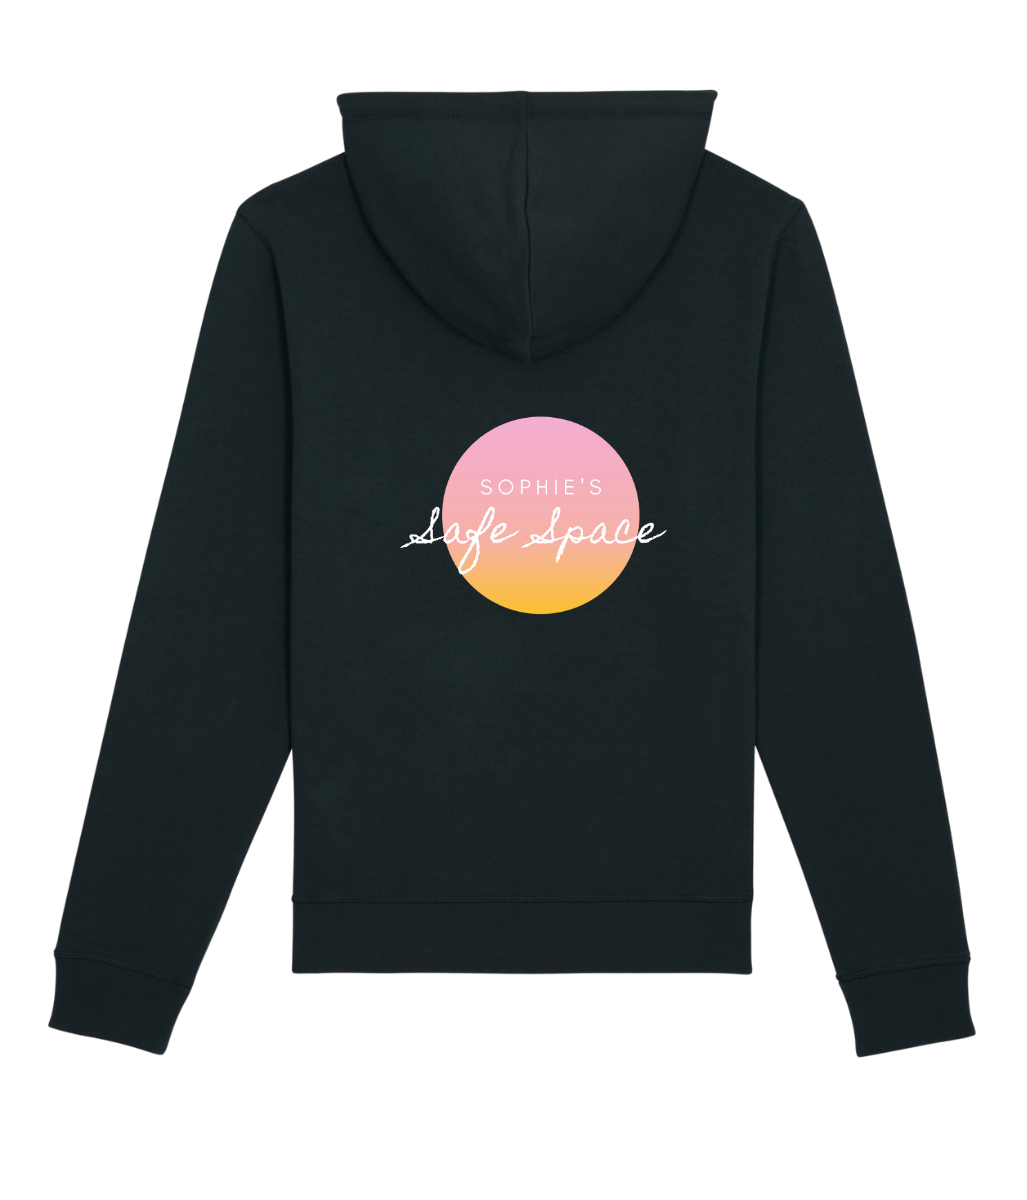 Laden Sie das Bild in den Galerie-Viewer, Favie Curvy Fashion Sophie's Safe Space Yoga Kollektion fat friendly Yoga fat bodies do yoga too Hoodie schwarz Statement Print Leger Ansicht hinten